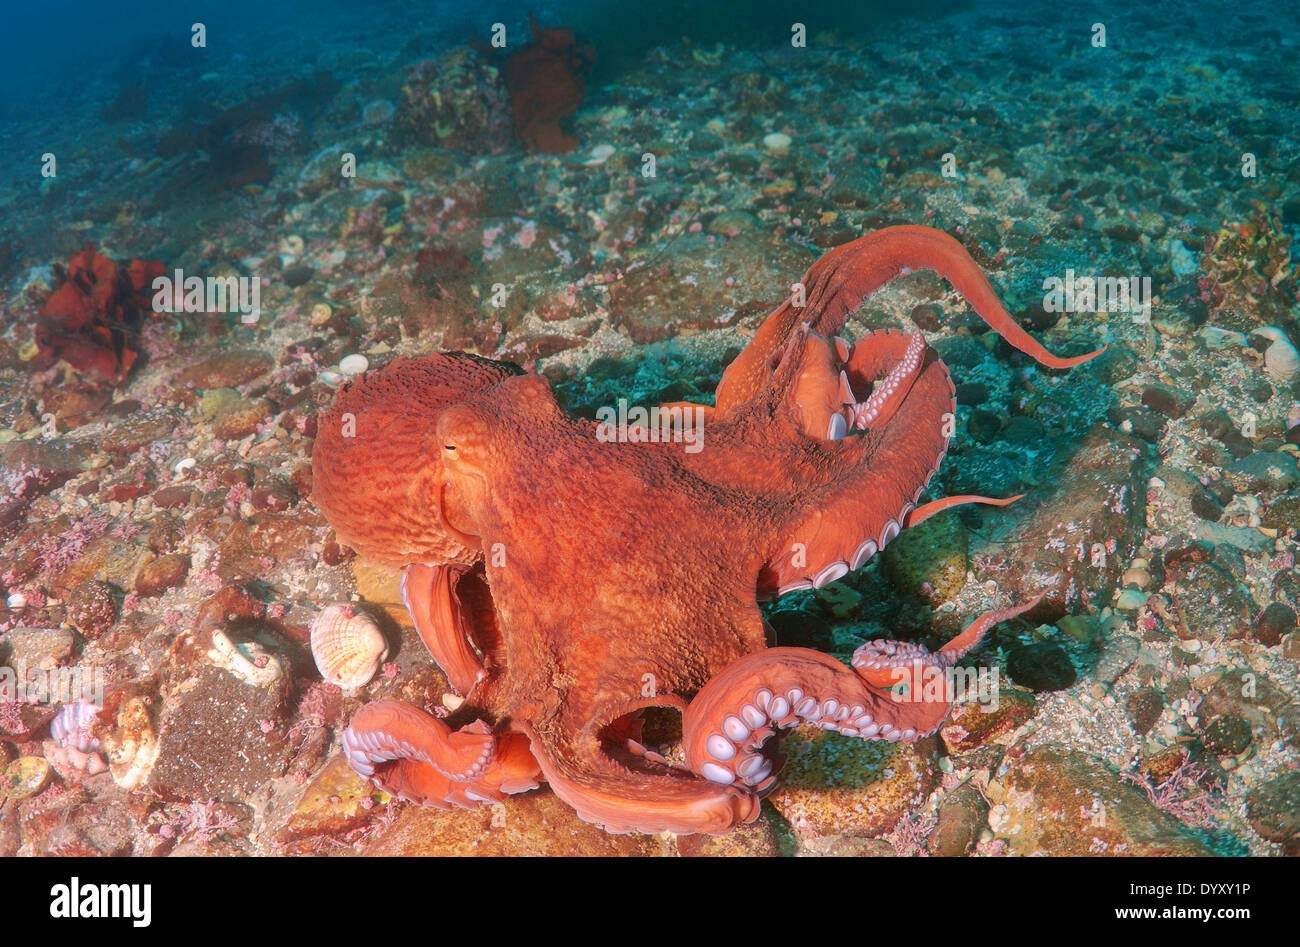 Giant Pacific octopus or North Pacific giant octopus, (Enteroctopus dofleini). Japan sea, Far East, Primorsky Krai, Russia - Stock Image